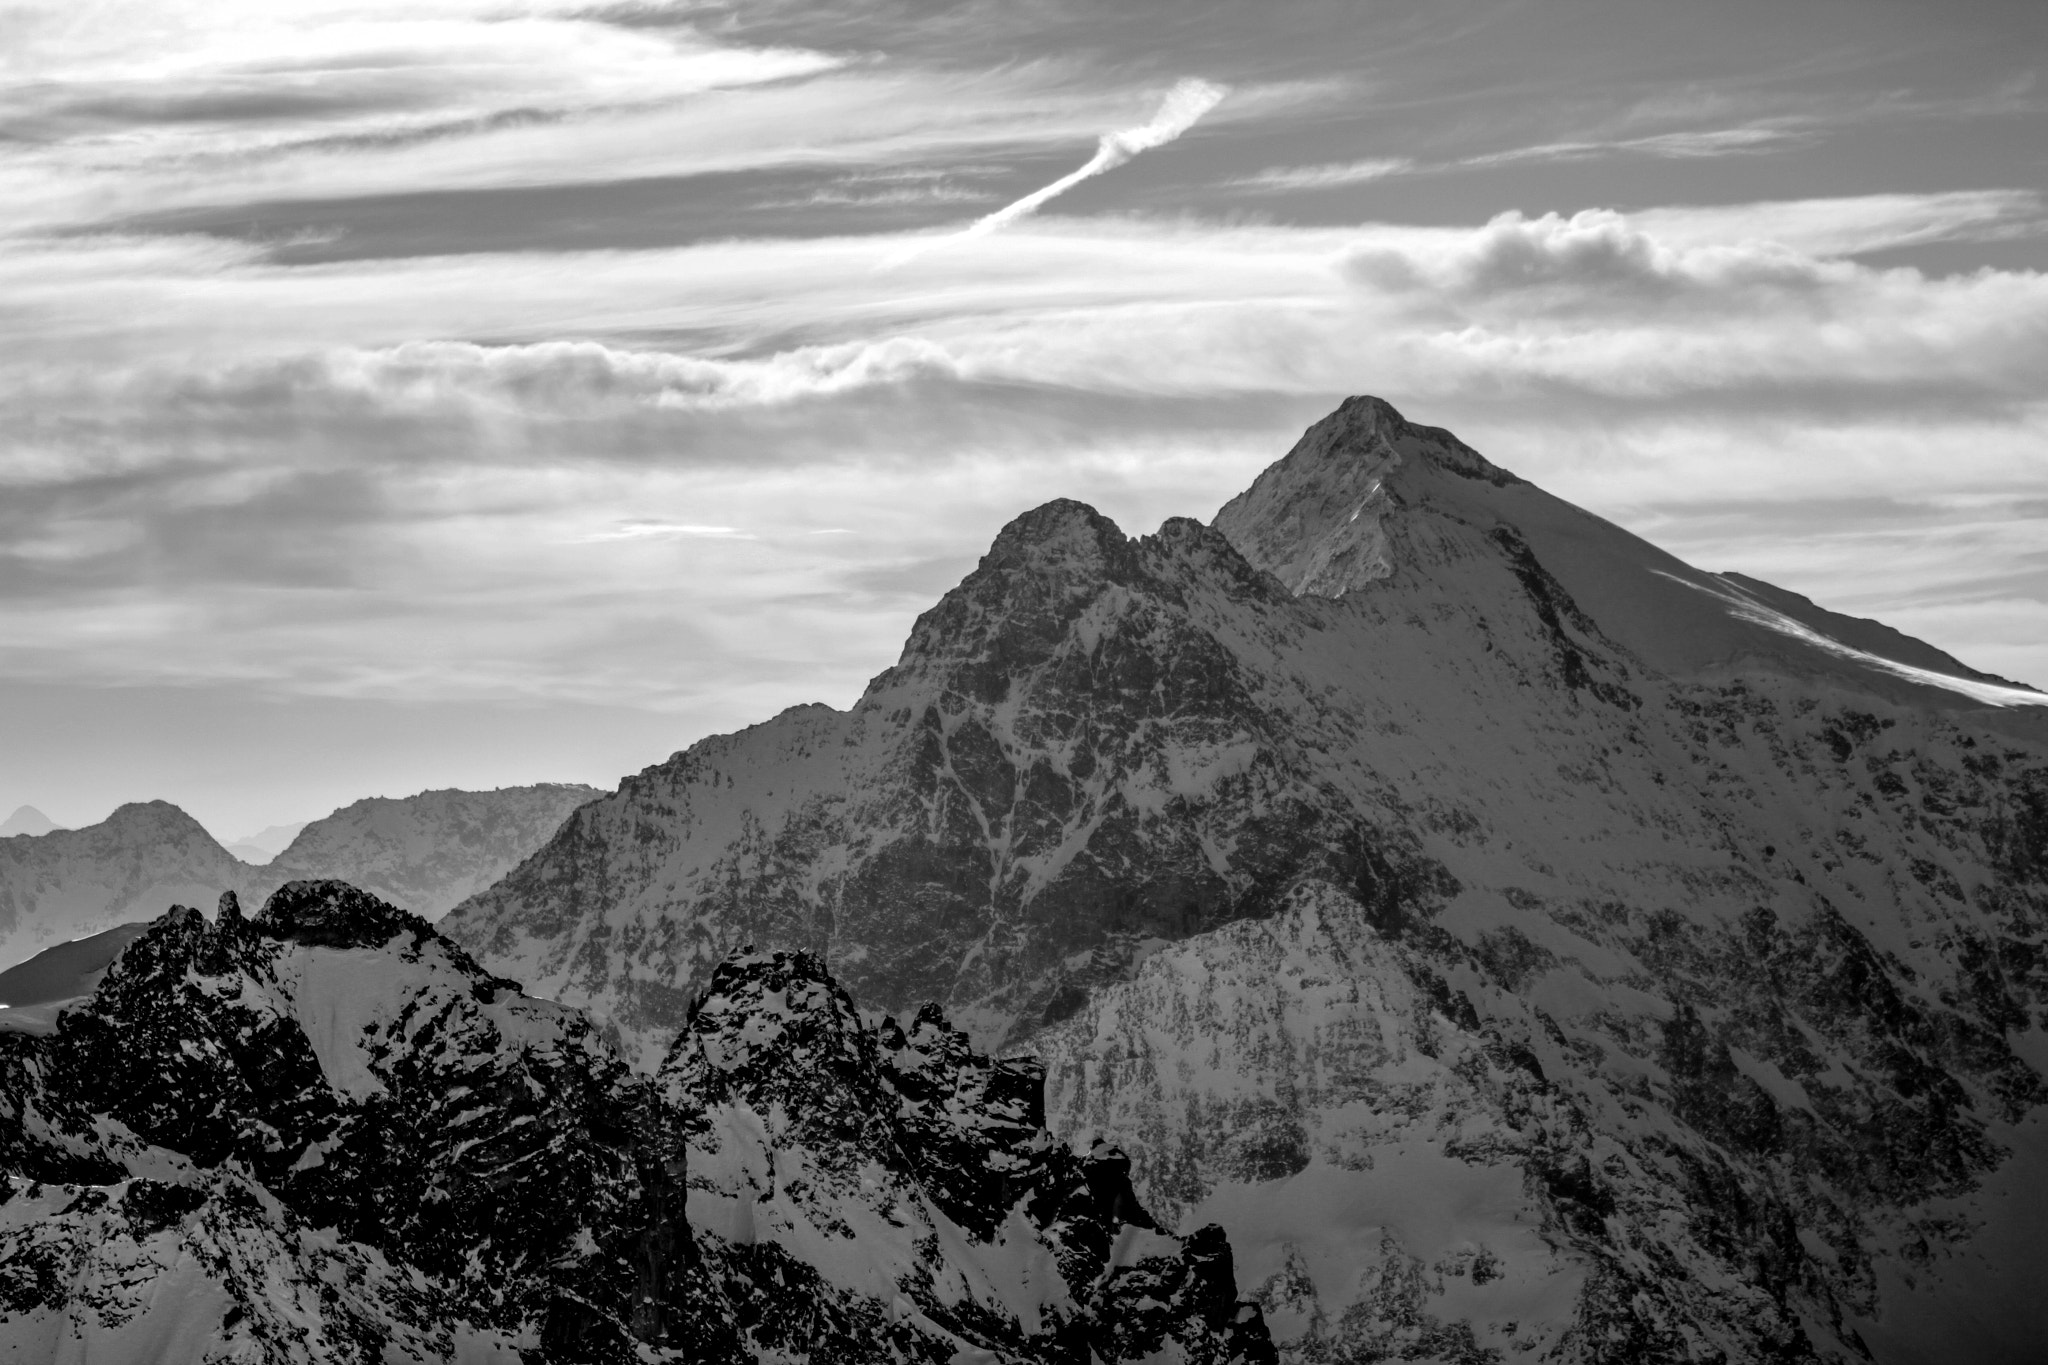 Photograph Mountain @ Titlis, Engelberg by Stephan Scherz on 500px